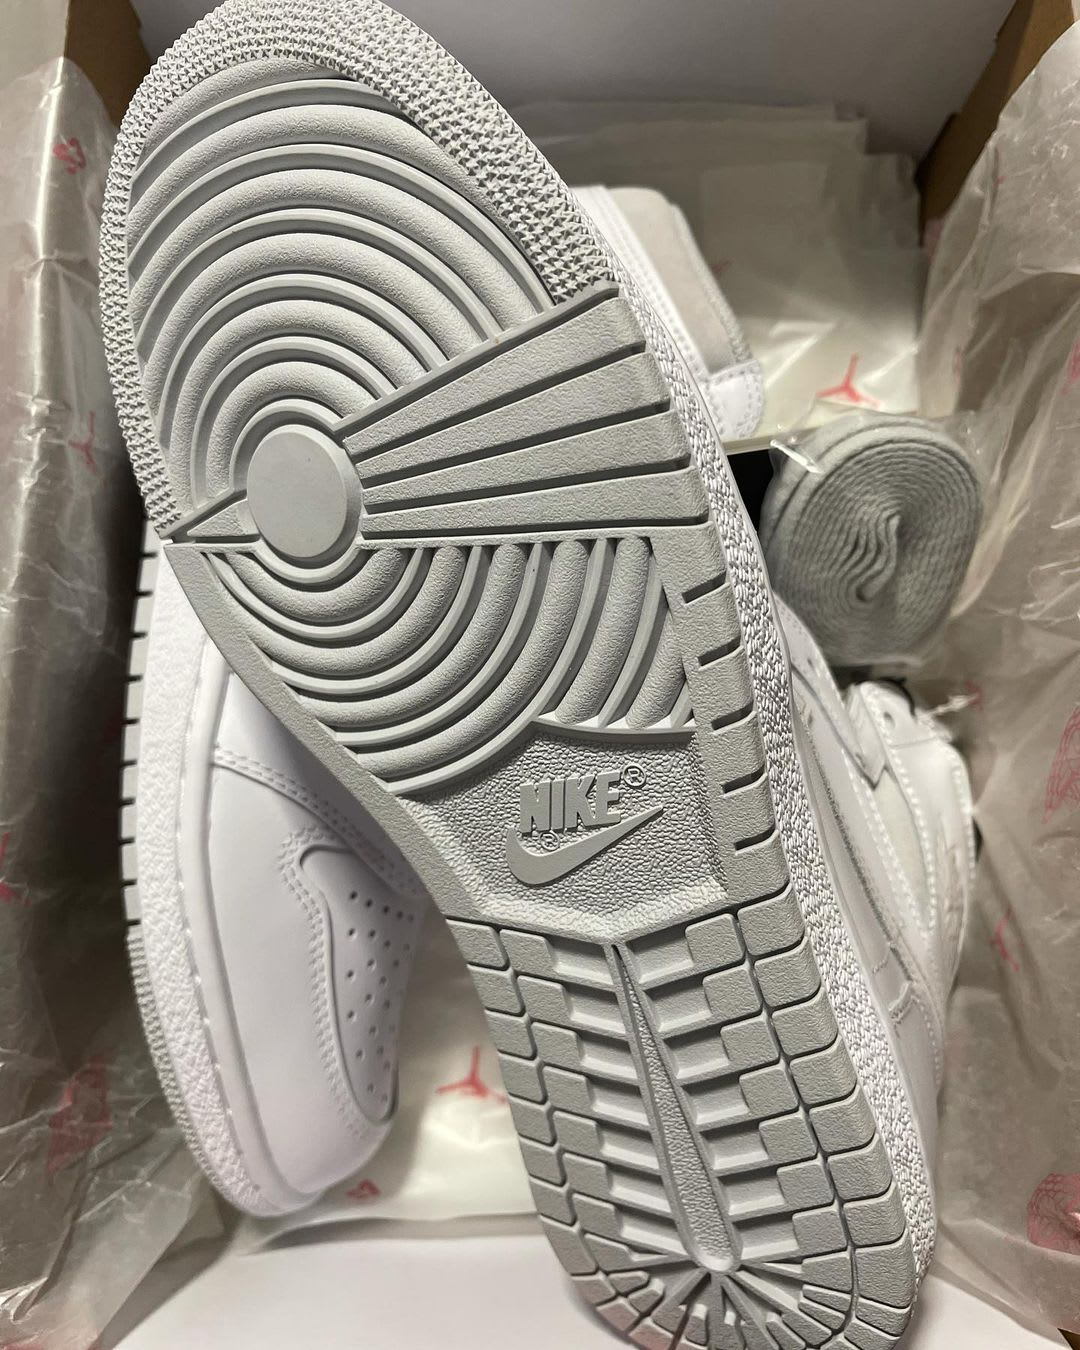 Air Jordan 1 Retro High OG 'Neutral Grey' BQ4422-100 Outsole